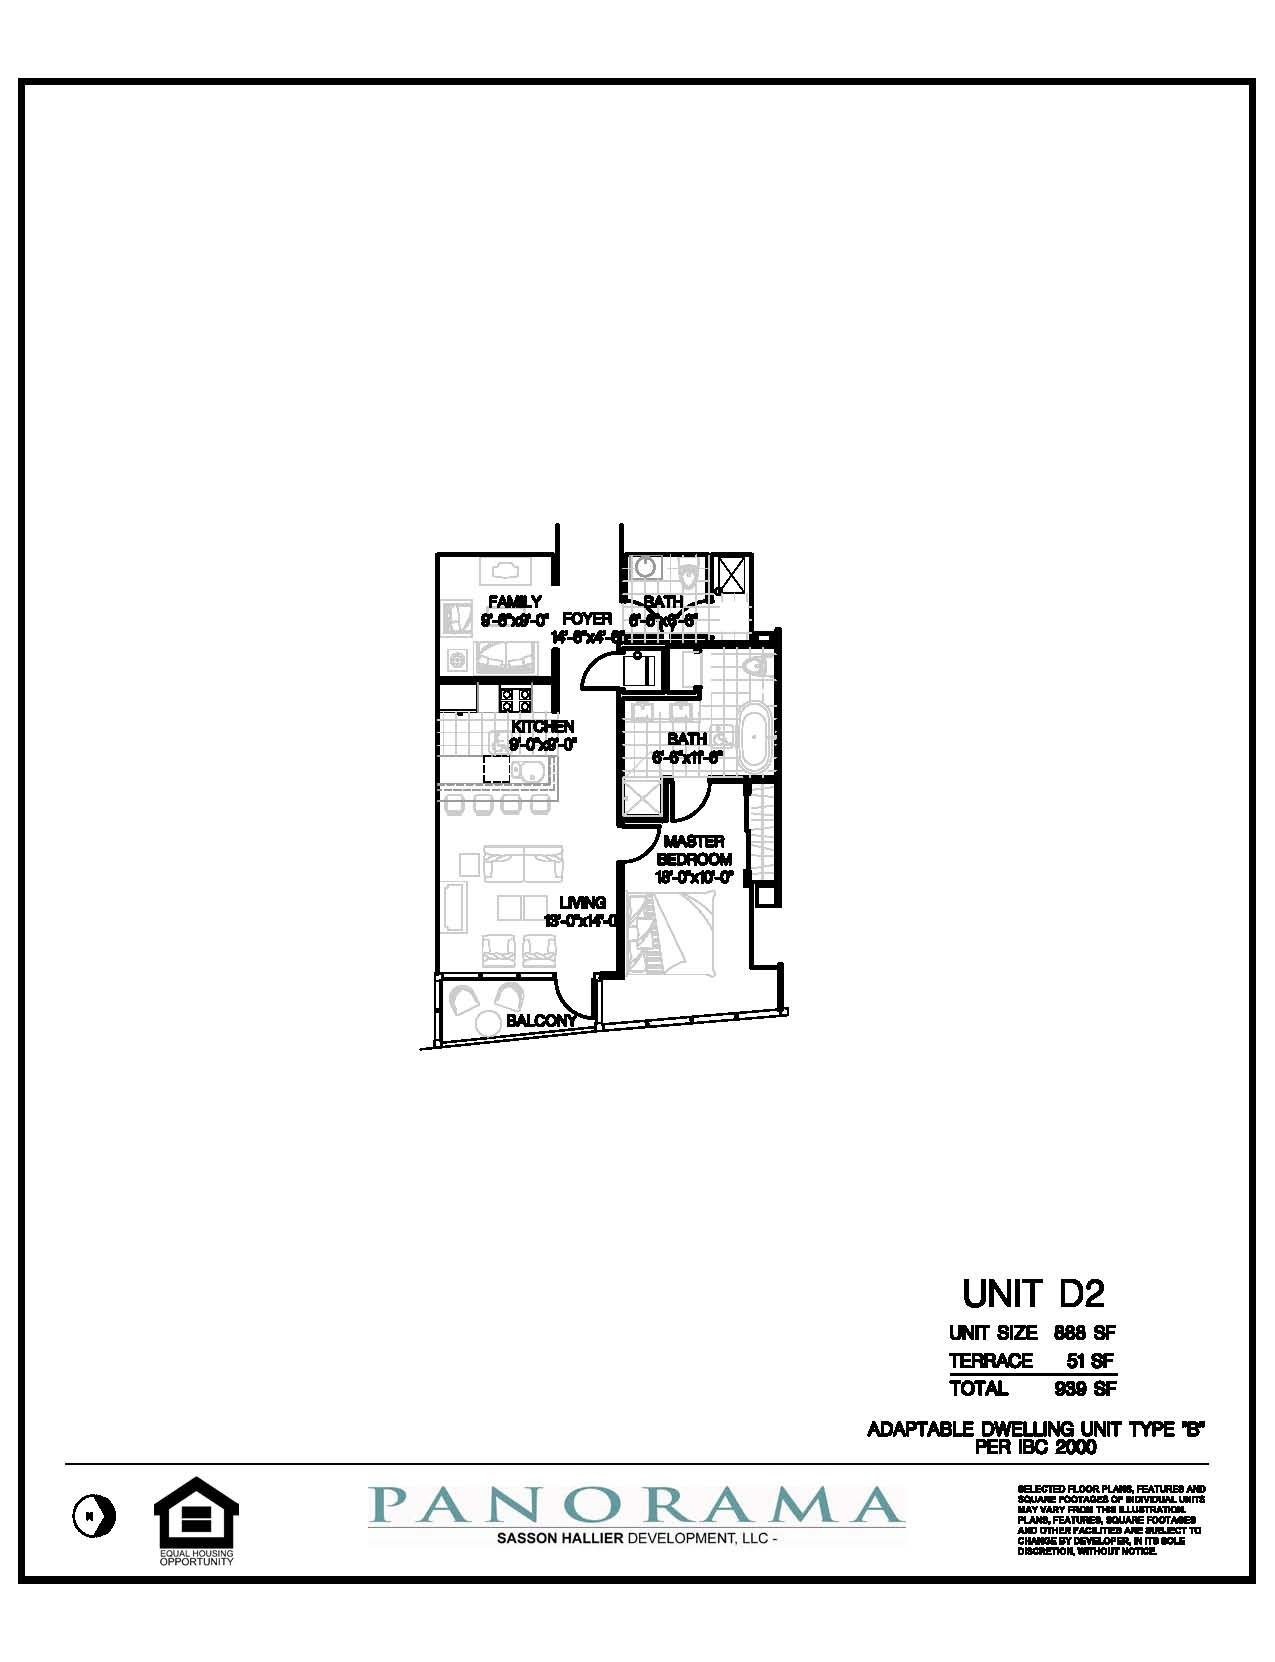 Panorama Floor Plans 1 Bedroom 2 Bath Den Panorama